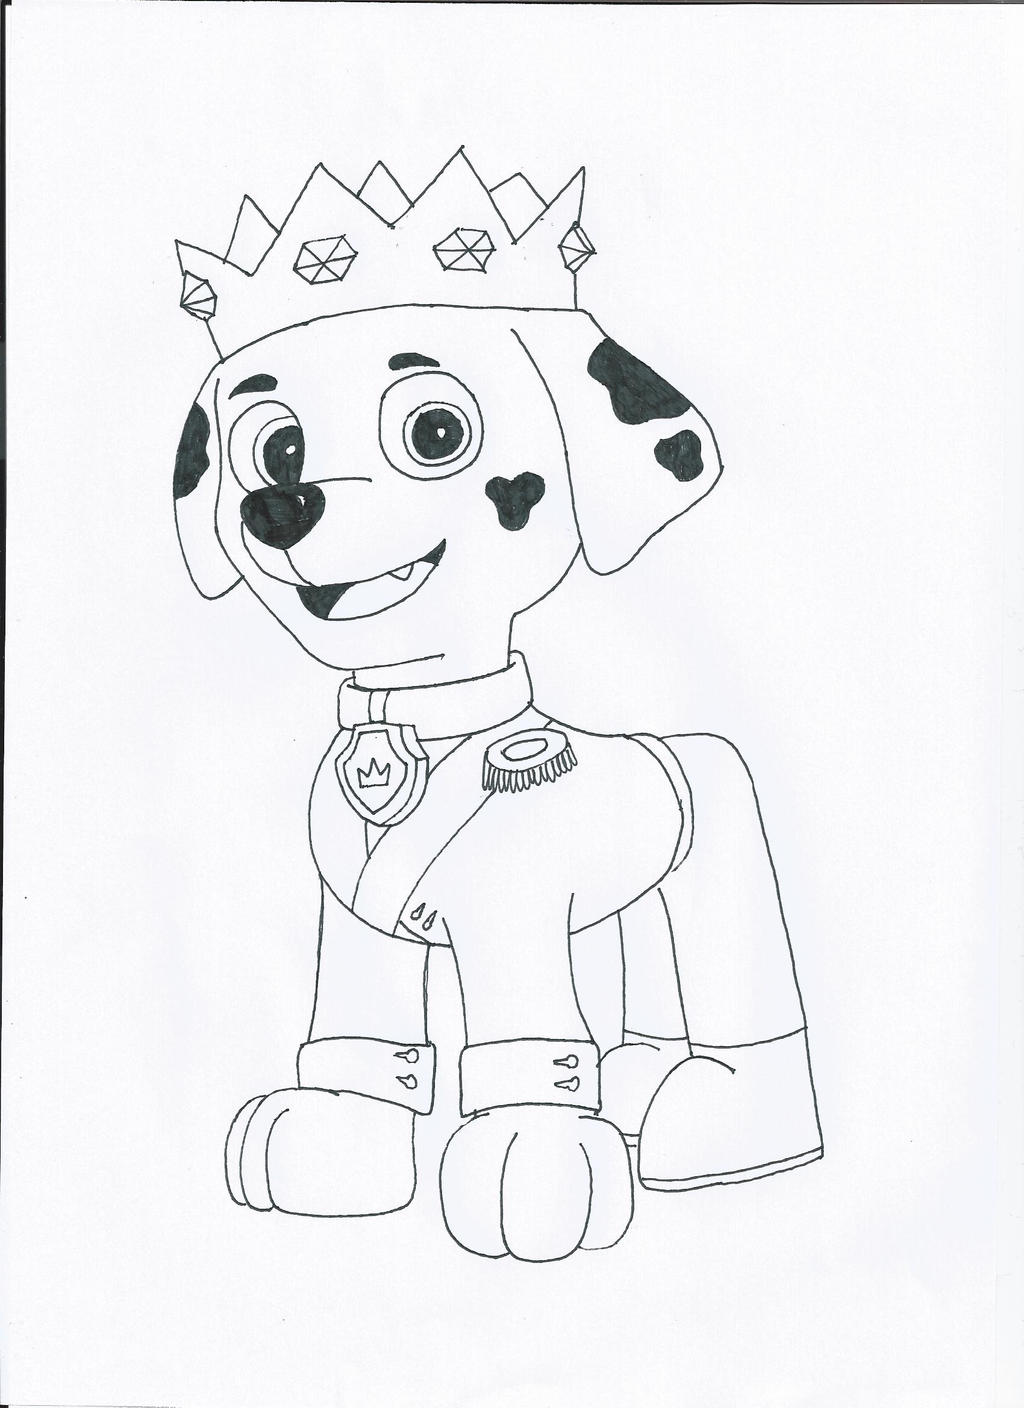 Paw patrol marshall coloring pages coloring pages for Marshall paw patrol coloring pages